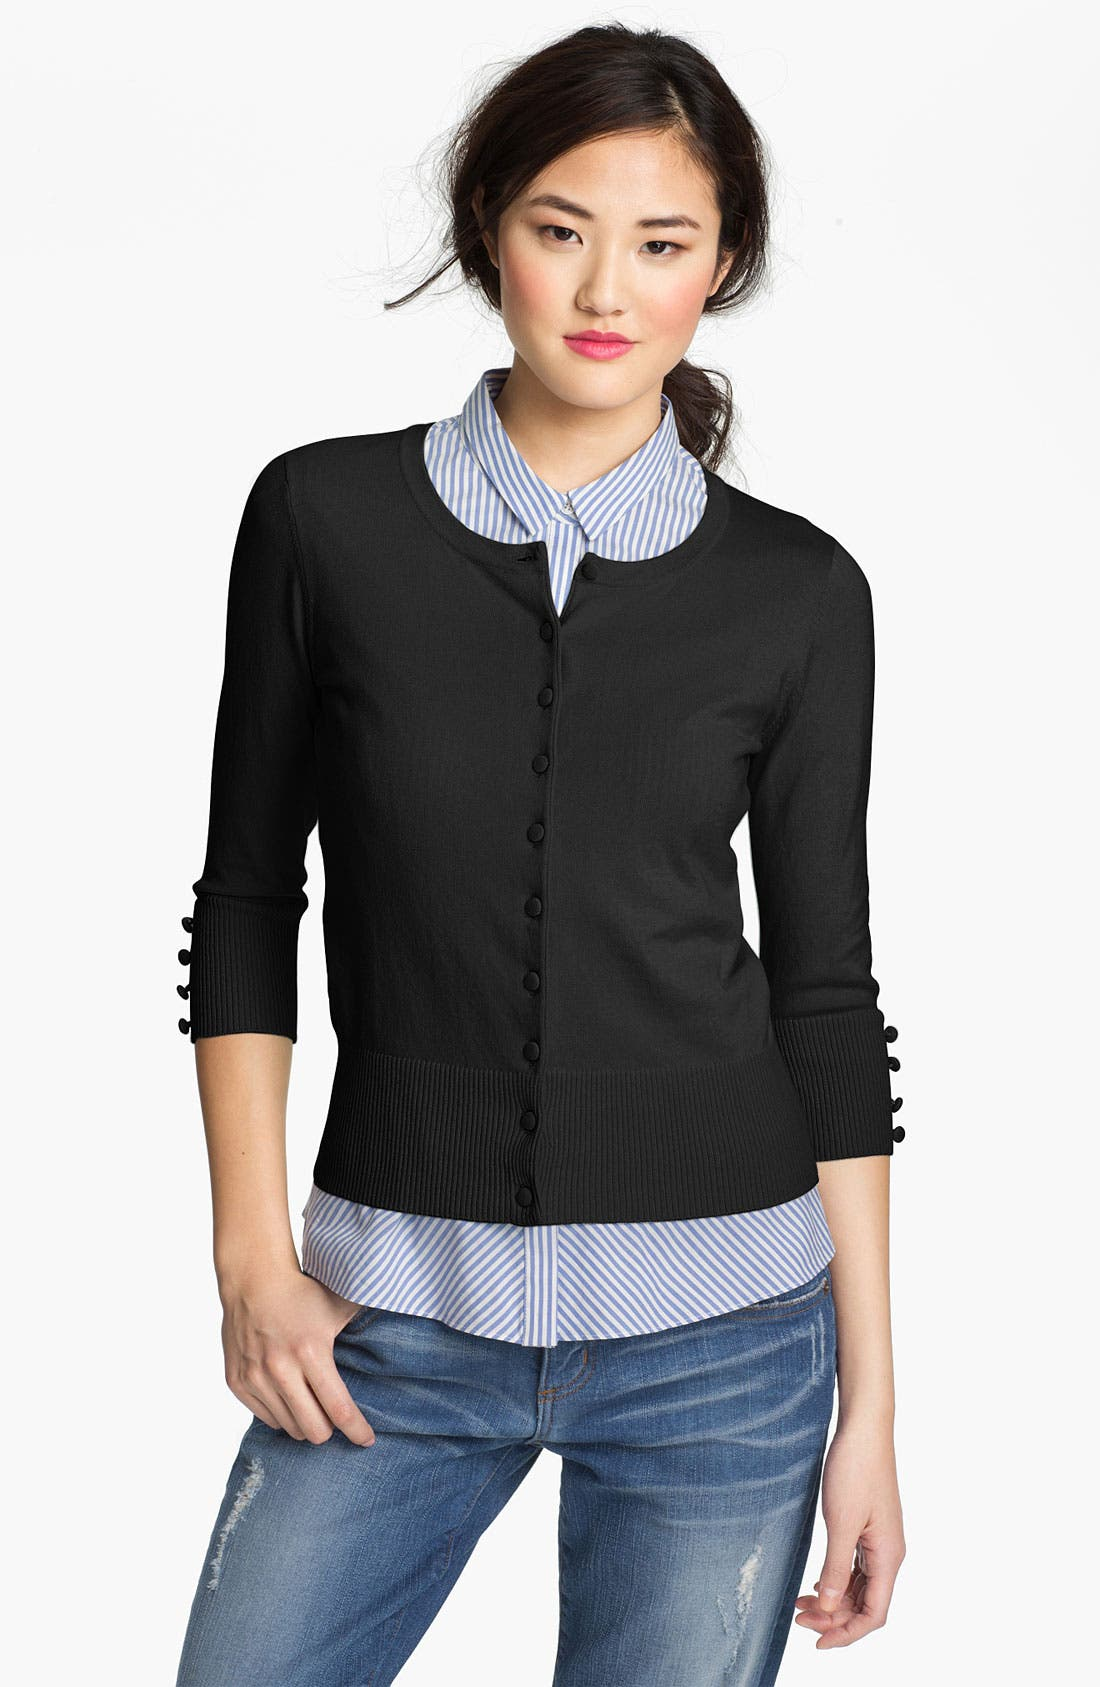 Alternate Image 1 Selected - Vince Camuto Button Front Cardigan